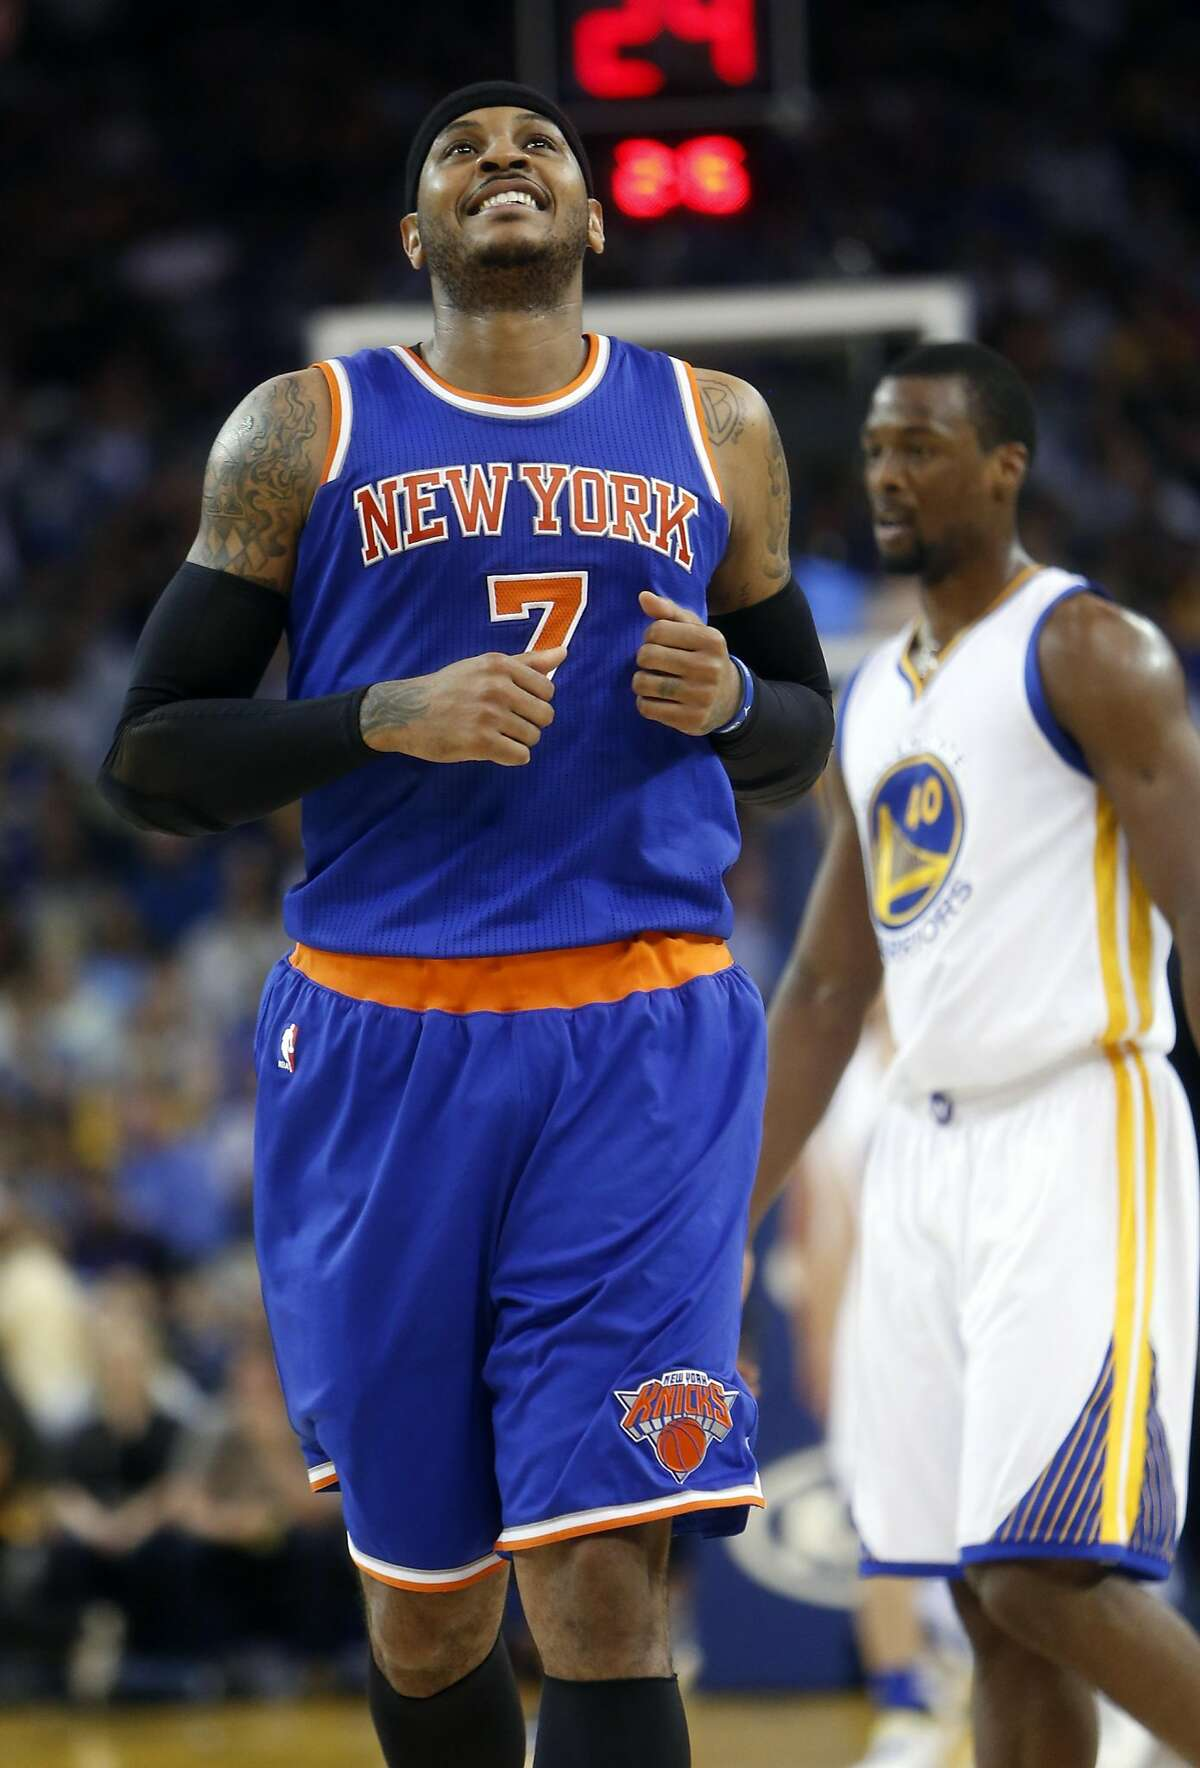 New York Knicks' Carmelo Anthony reacts to a successful 3-pointer in 2nd quarter against Golden State Warriors' Harrison Barnes in NBA game at Oracle Arena in Oakland, Calif., on Wednesday, March 16, 2016.